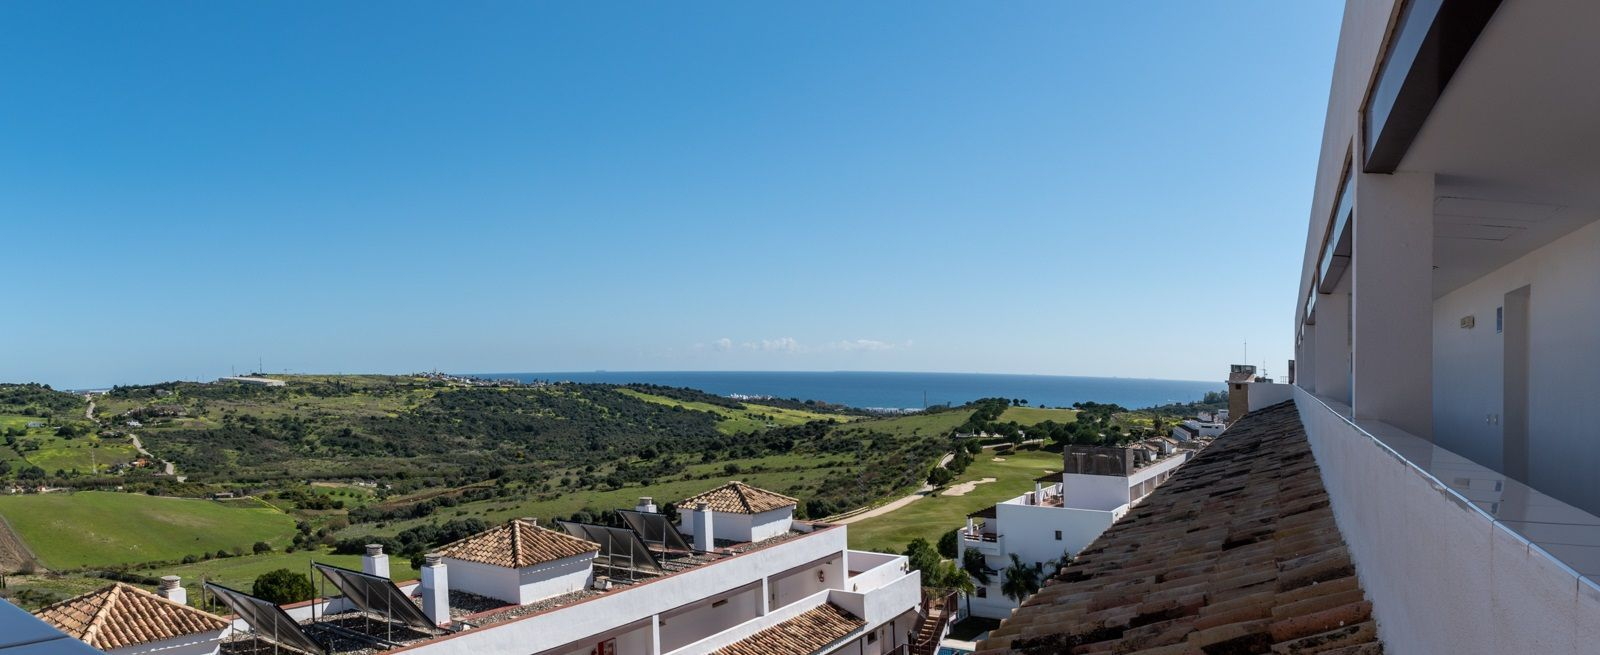 Holiday apartments investment in Estepona